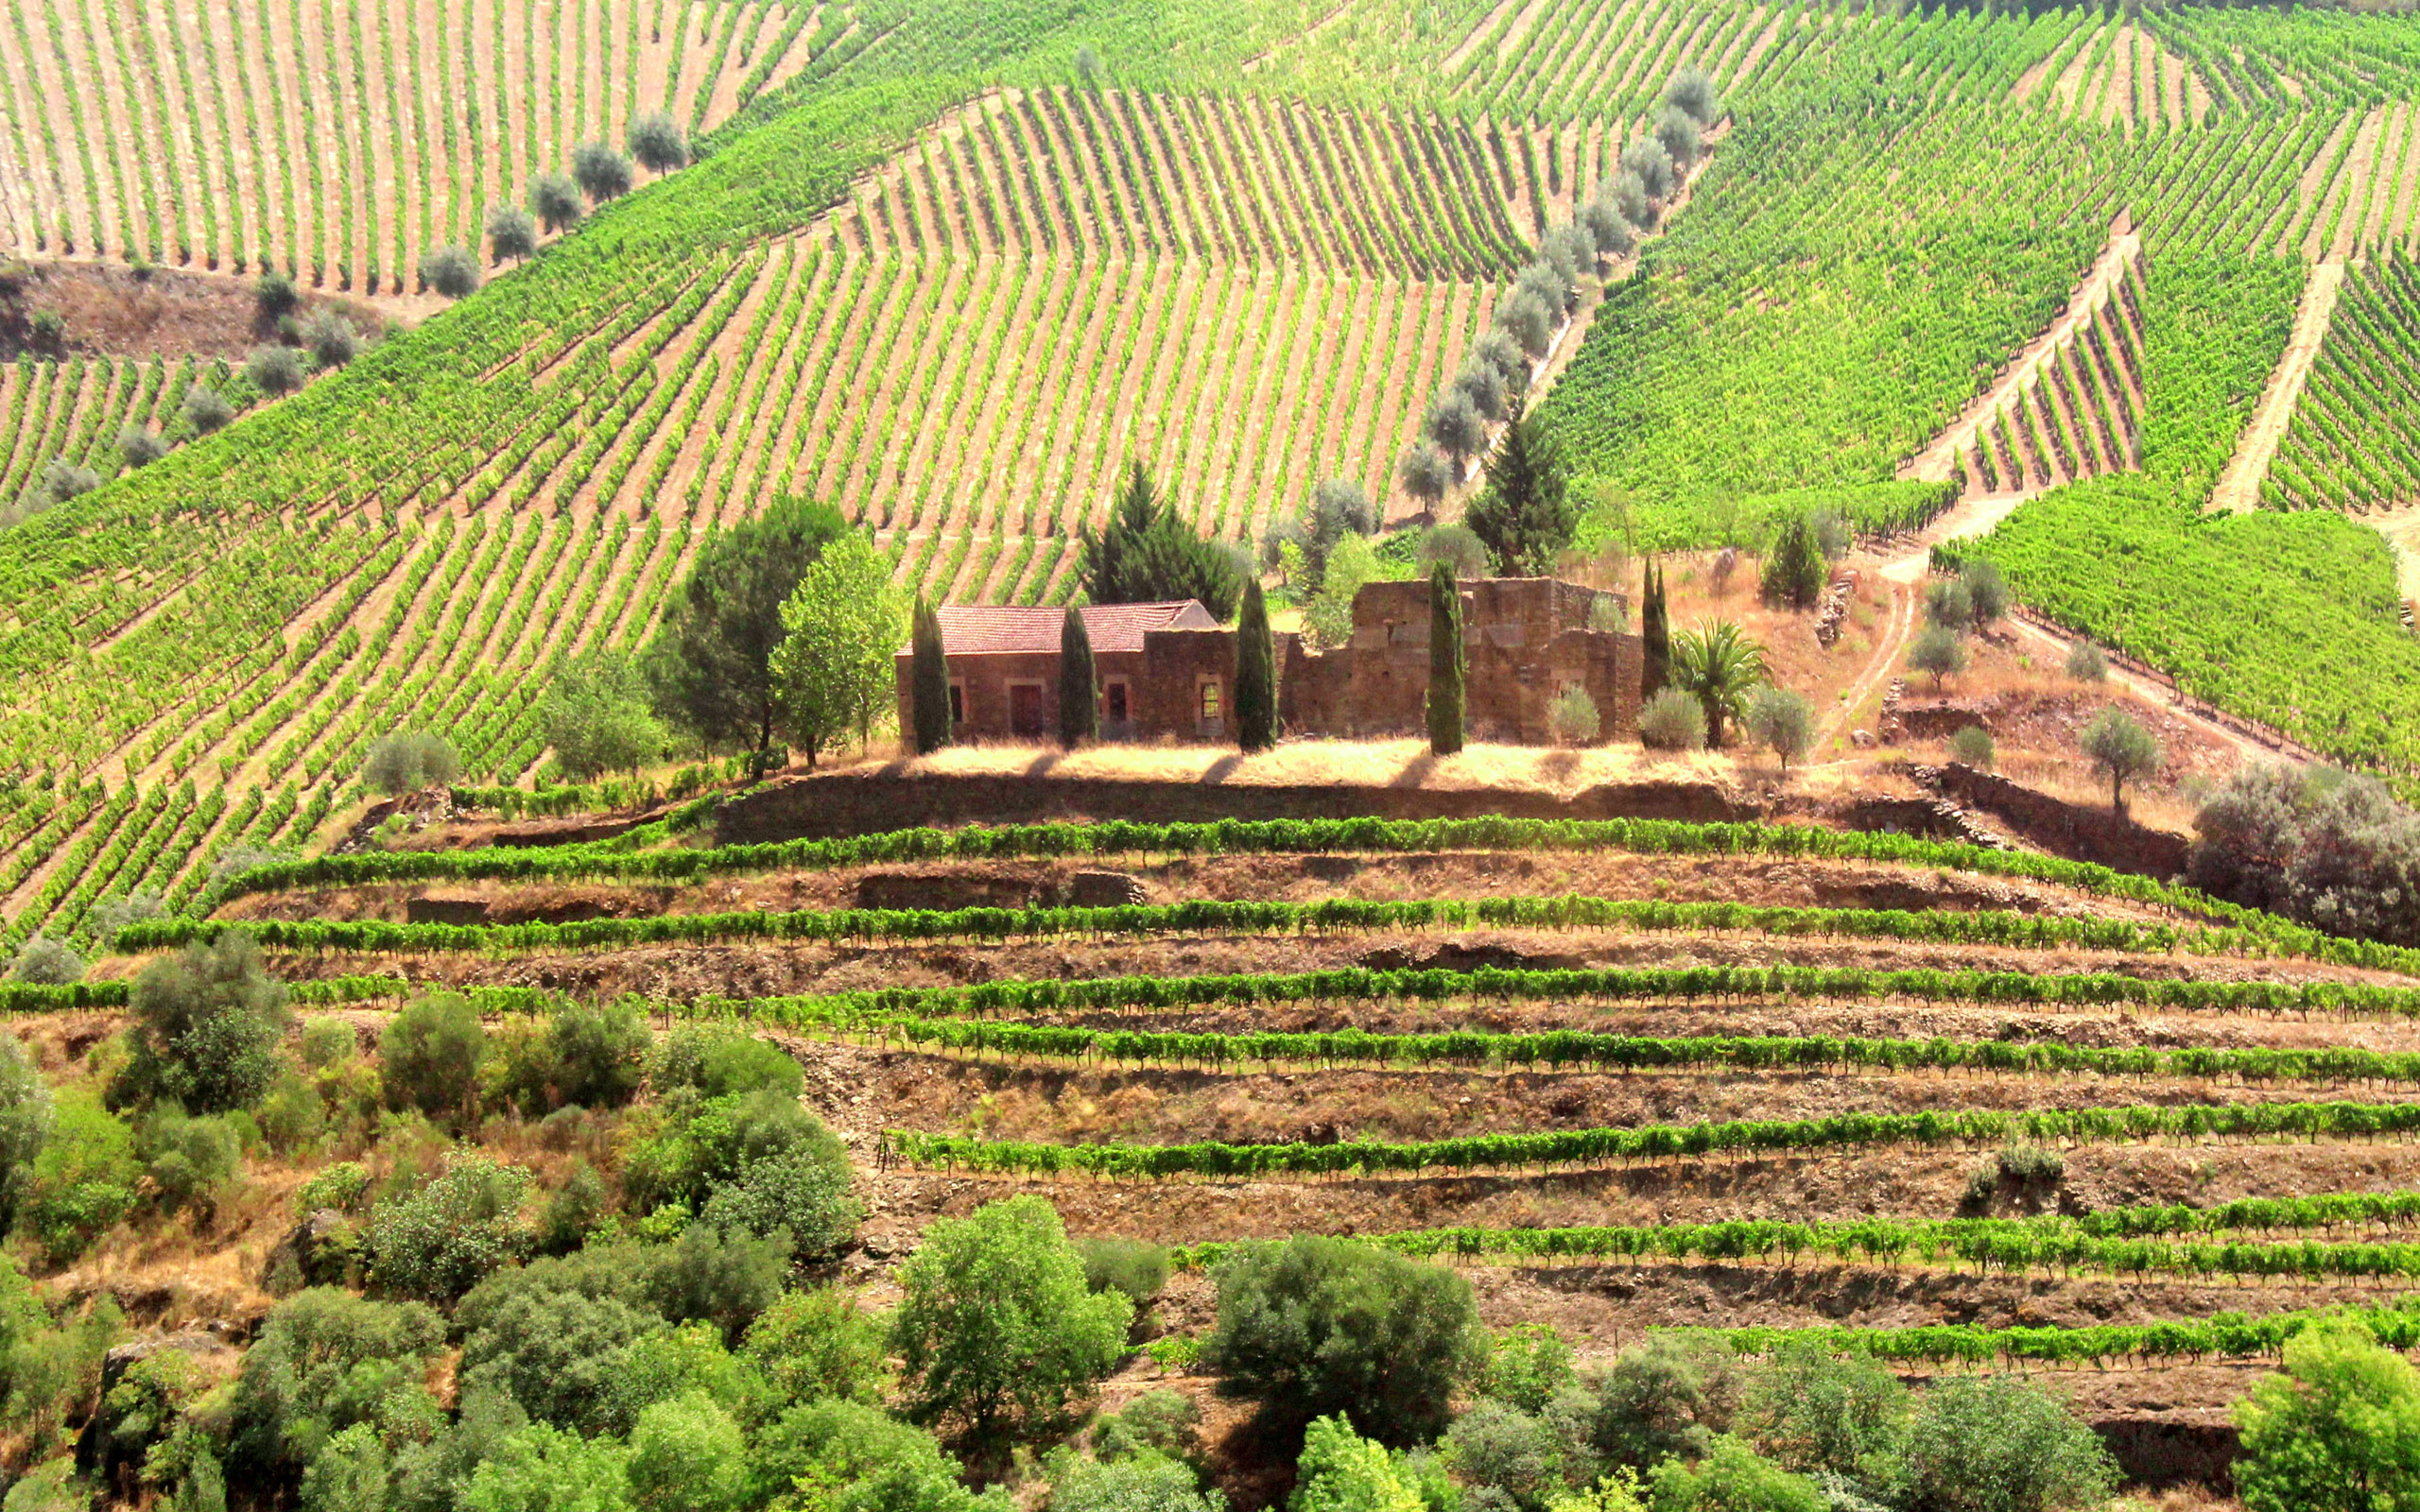 Vineyards Surrounding Old Country Estate - Douro Valley, Agriculture, Port, Scenery, Sandeman, HQ Photo